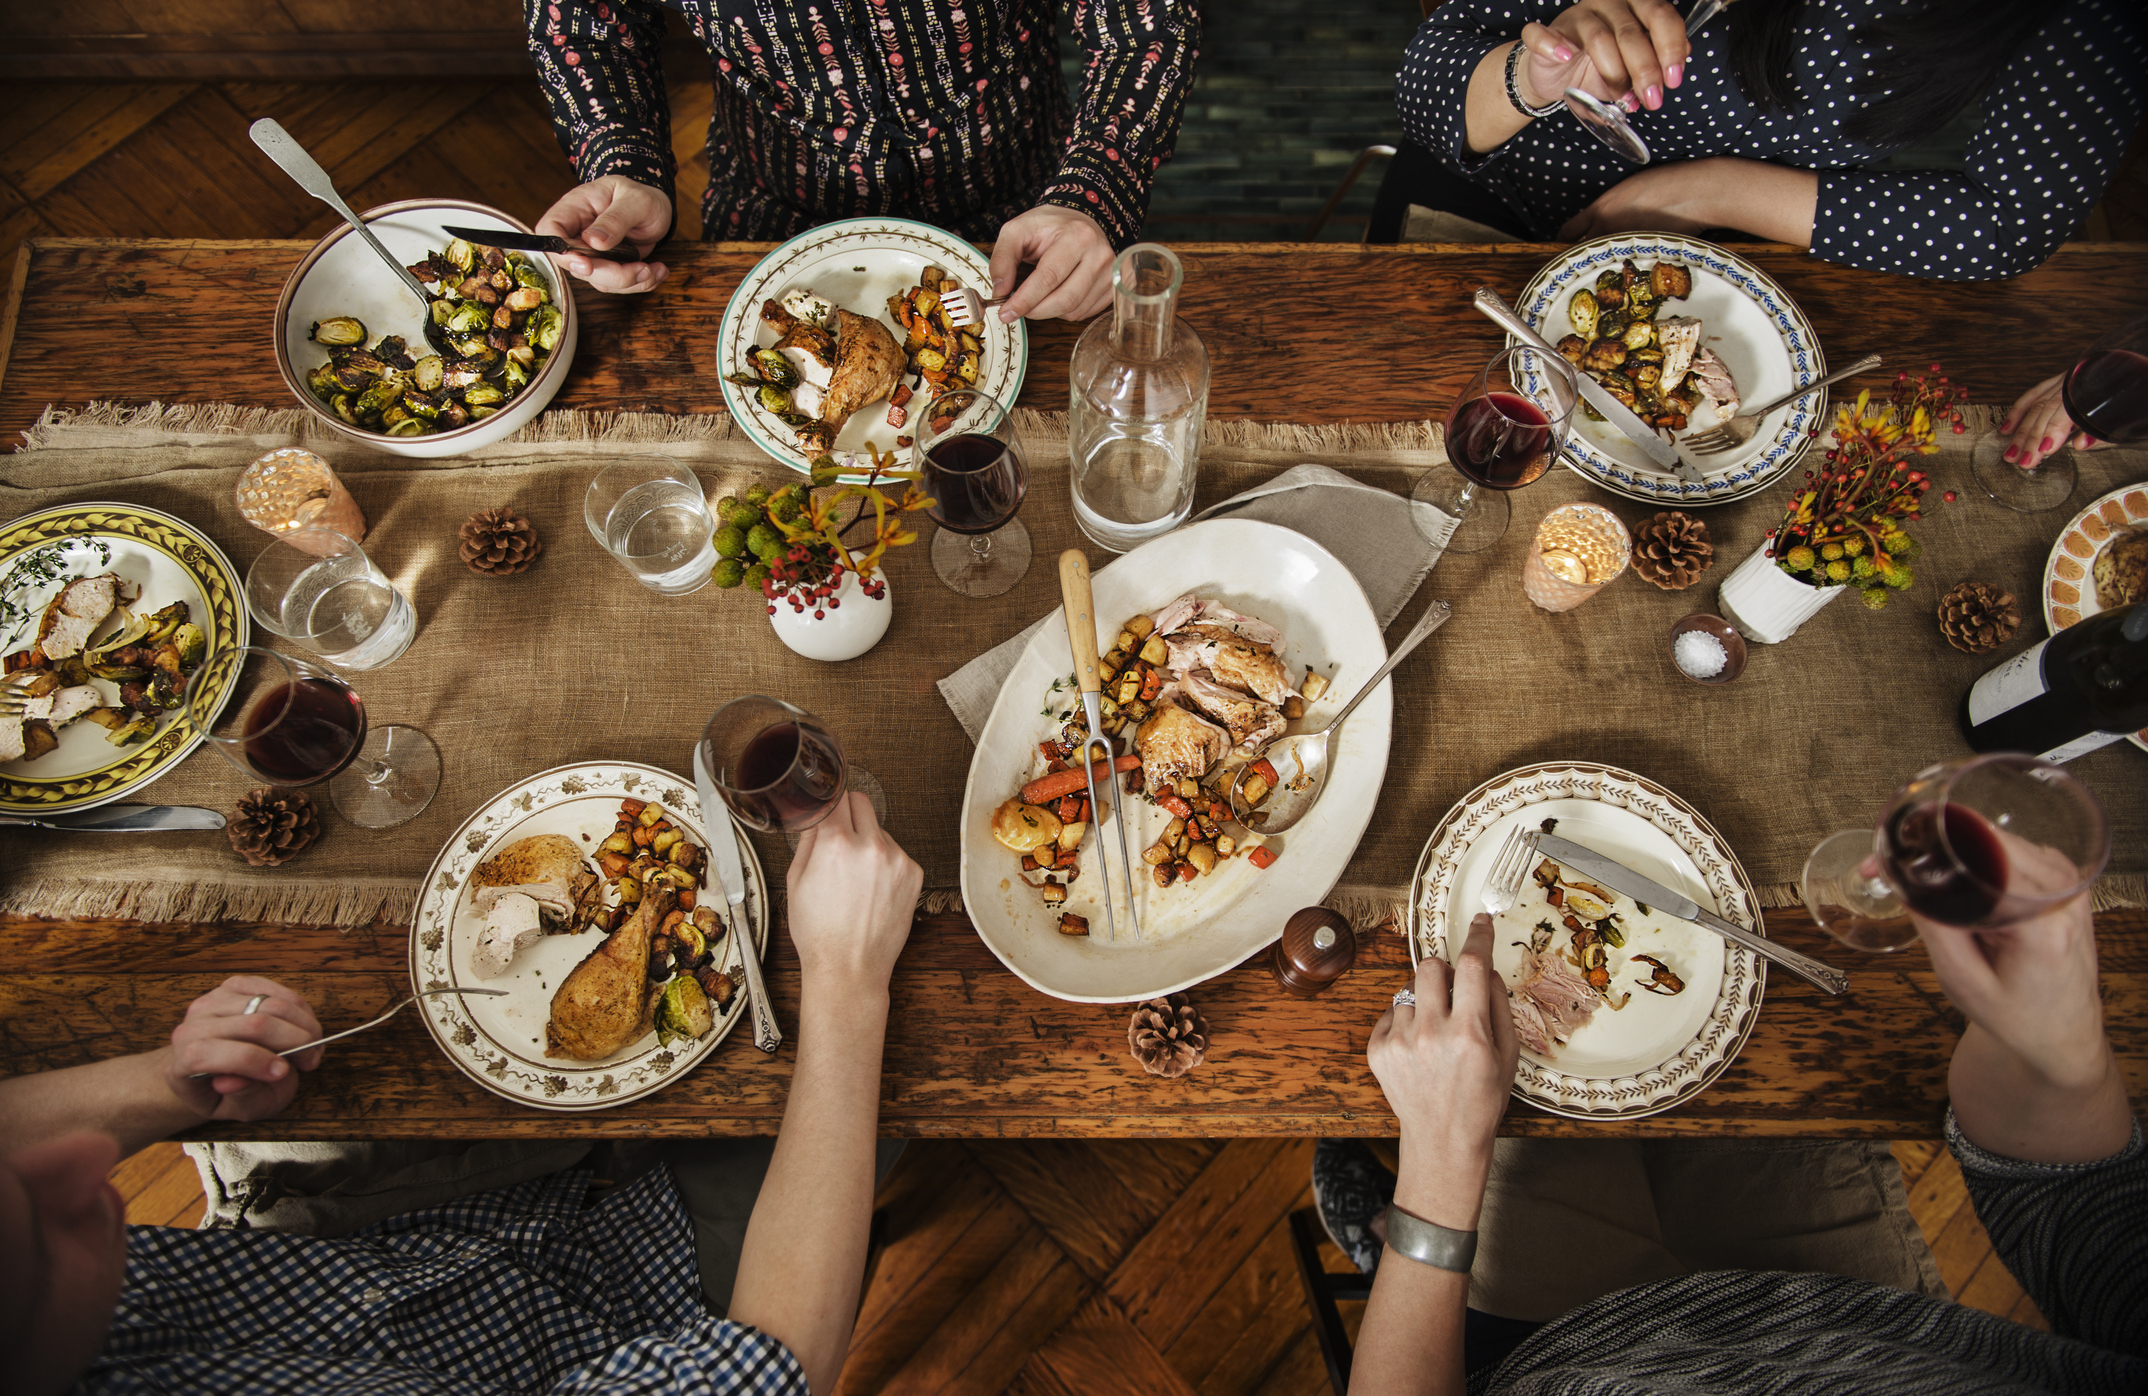 How to host Thanksgiving dinner when everyone has a dietary restriction